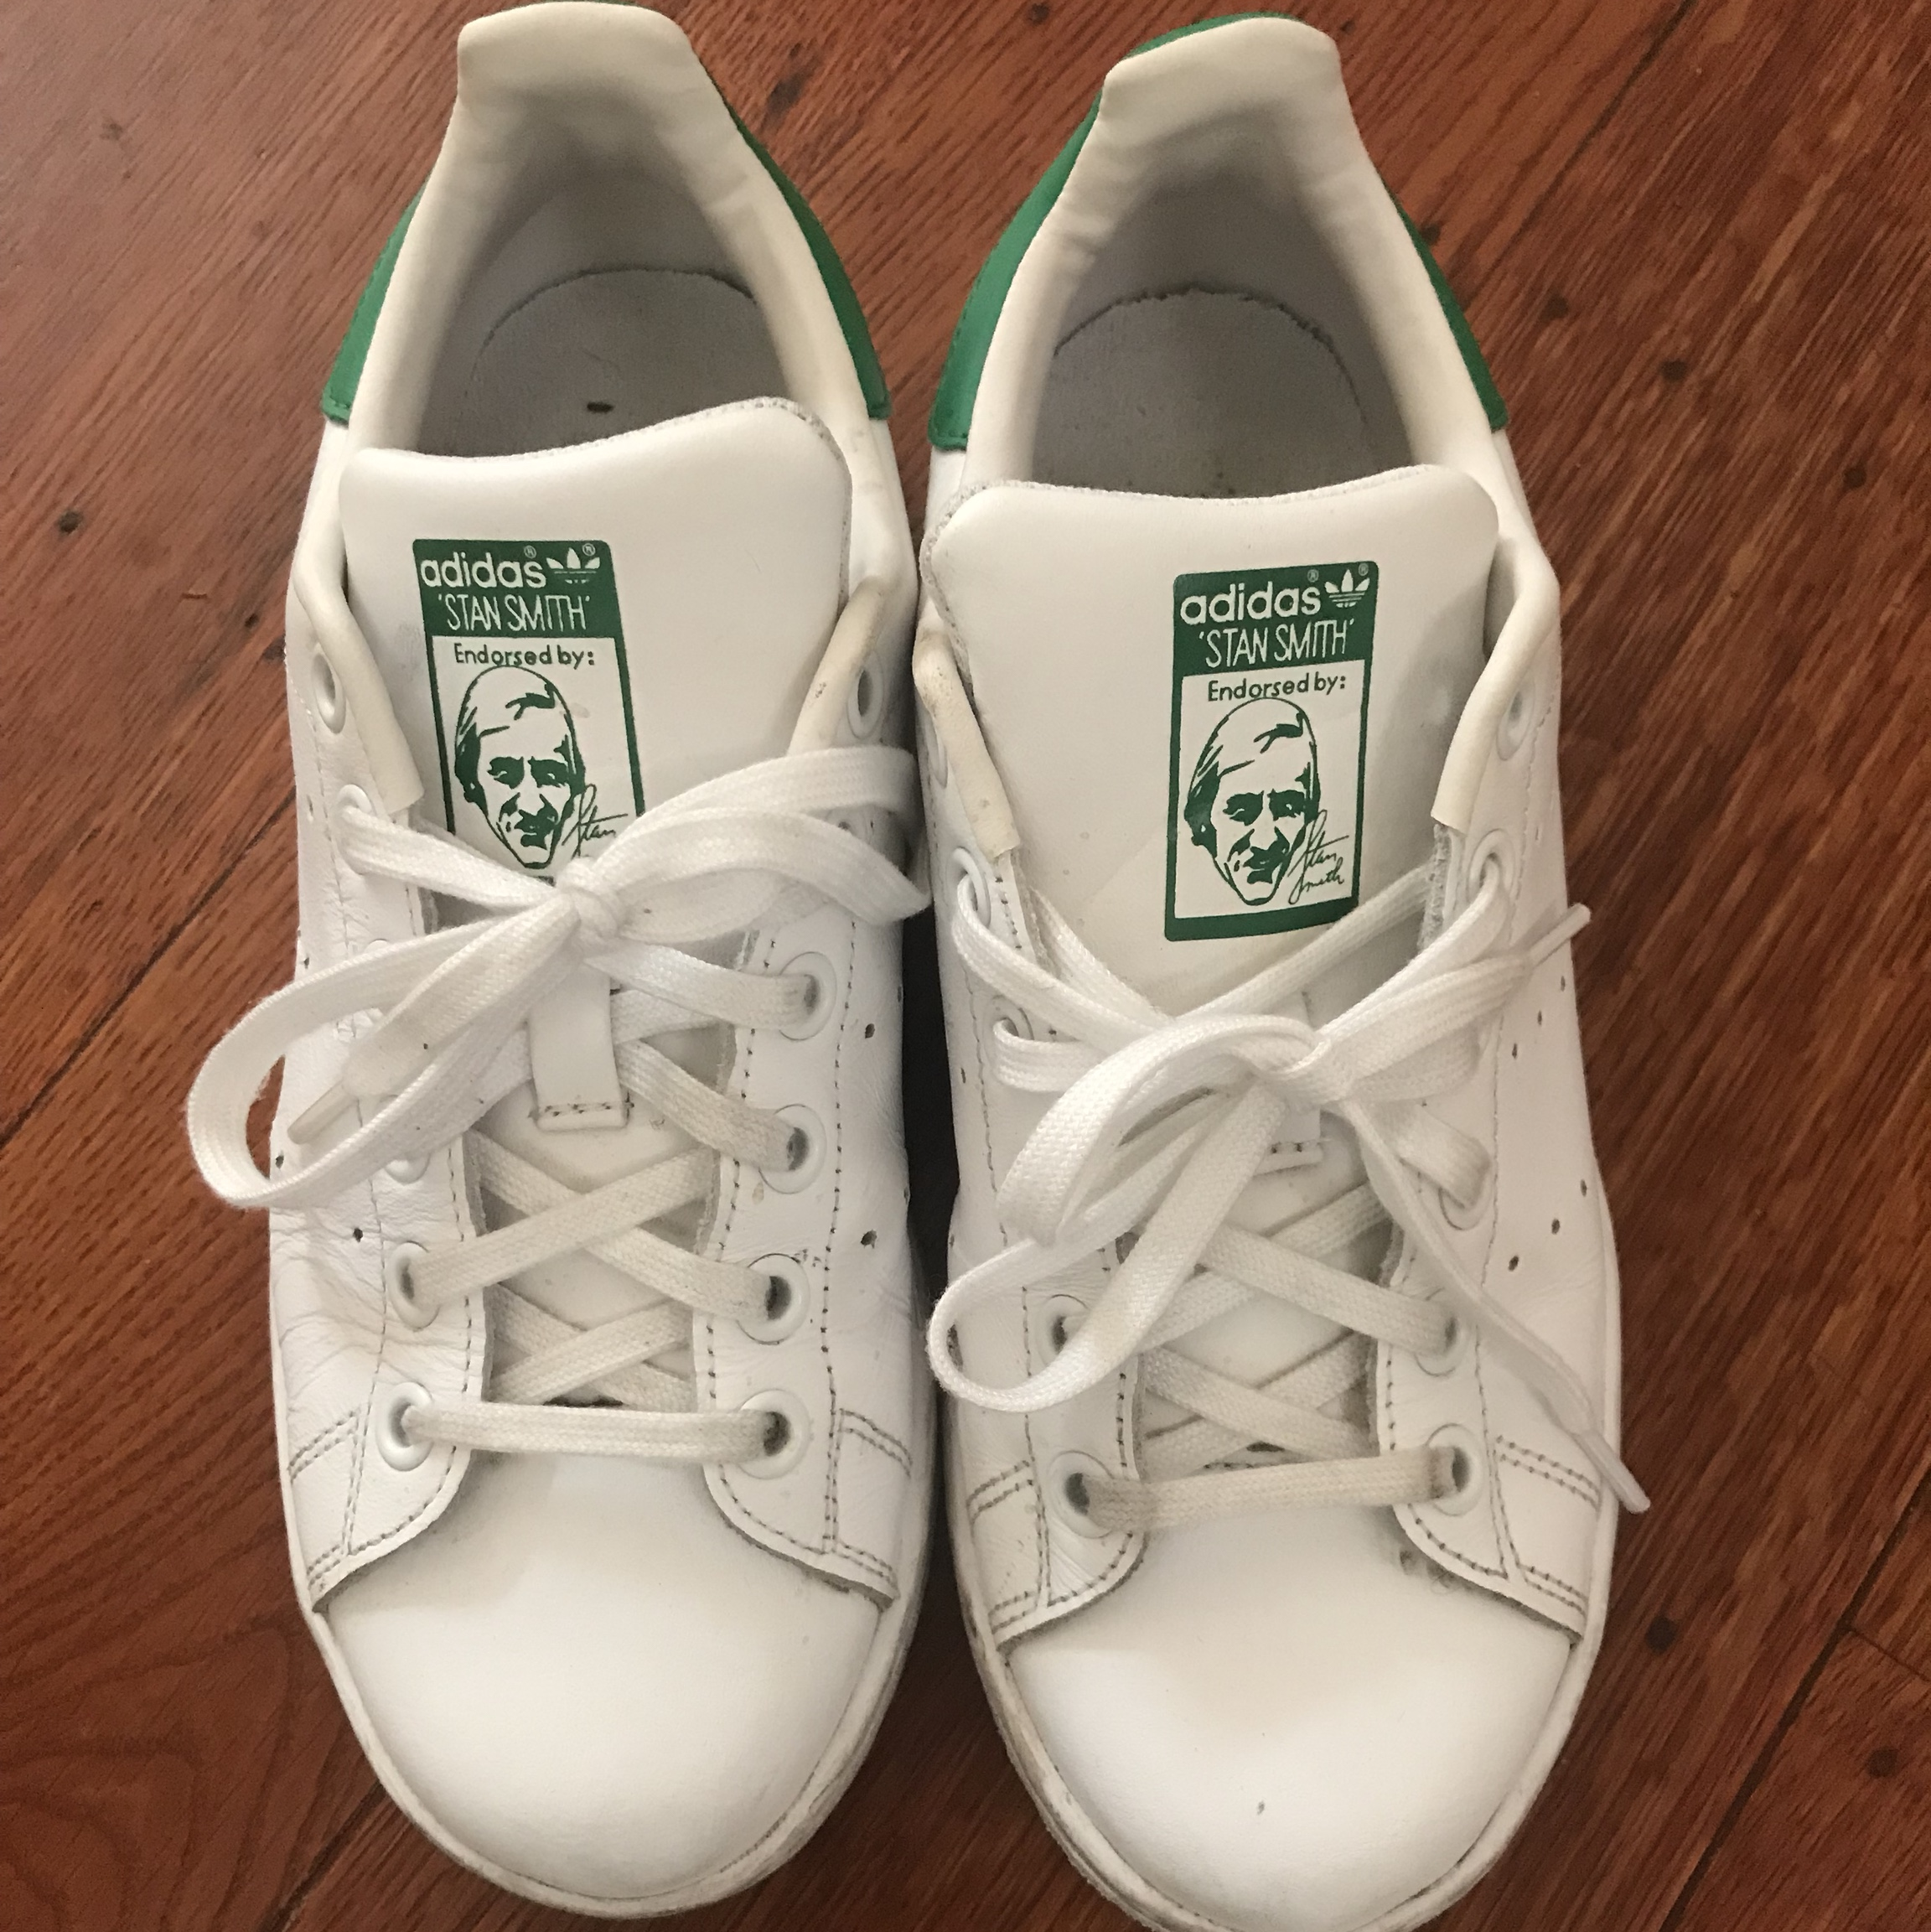 sports shoes 70d0a 509ed Adidas originals Stan smith in kids size 3.5 or... - Depop